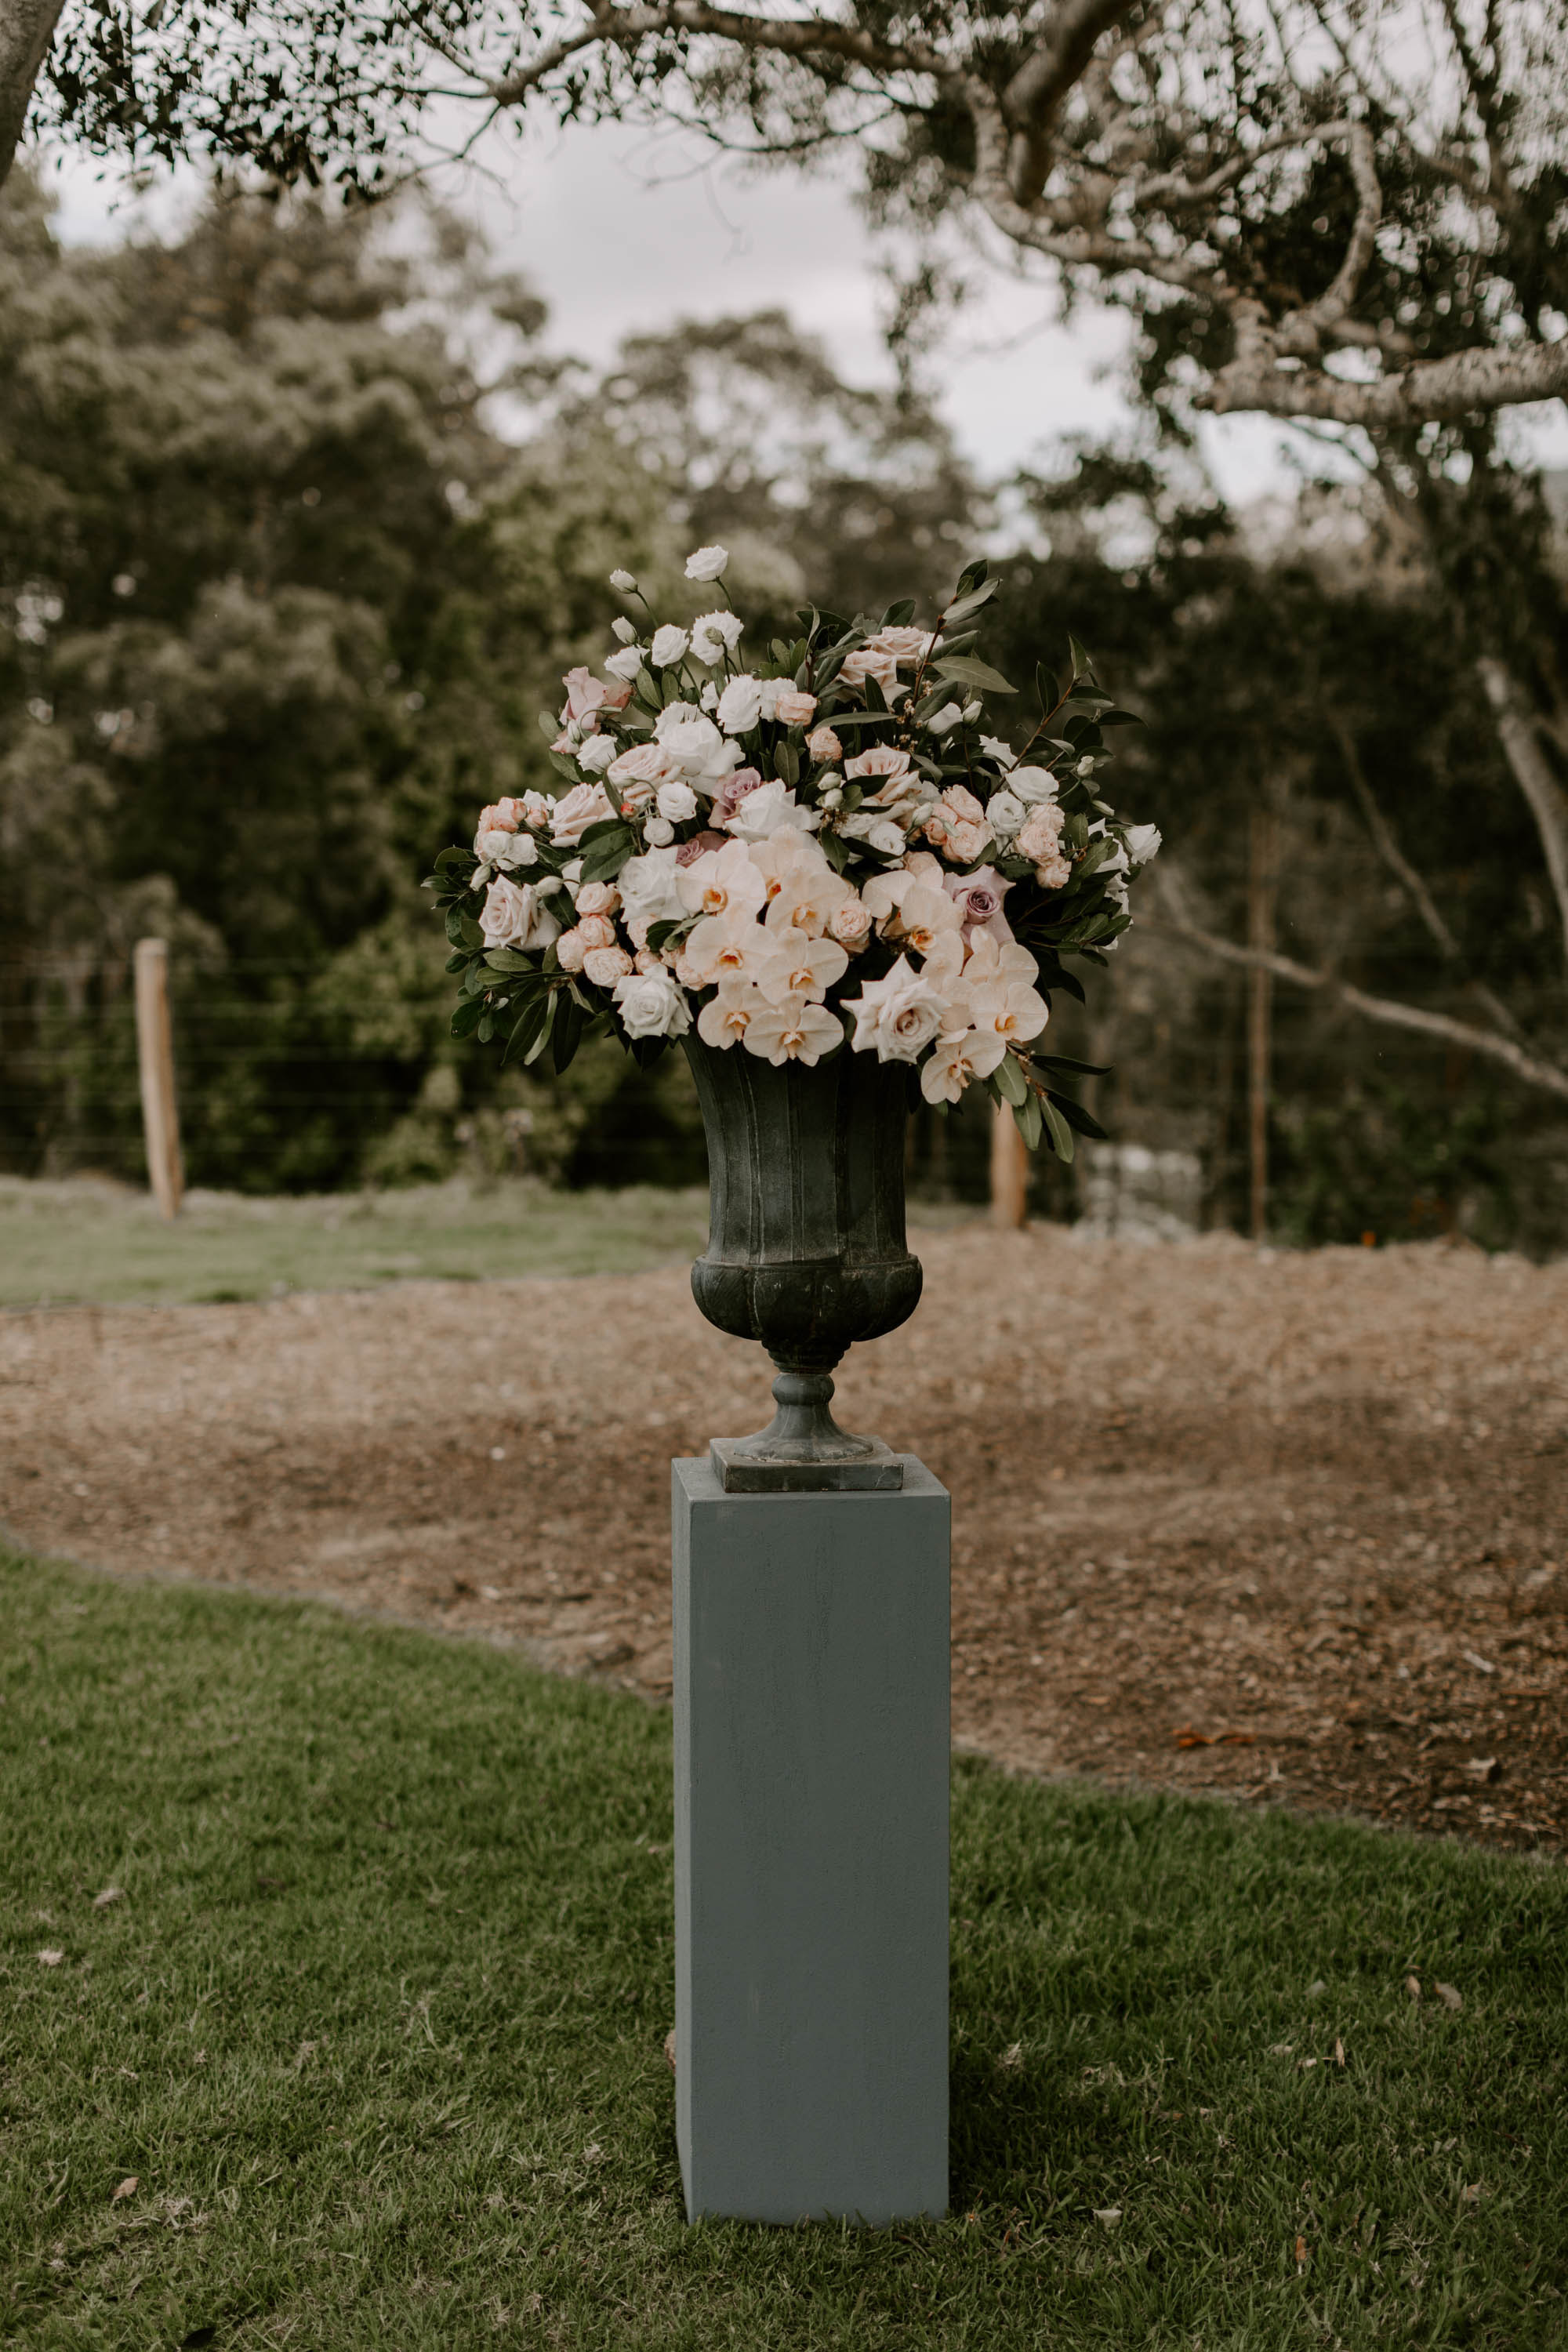 Modern ceremony urn featuring orchids